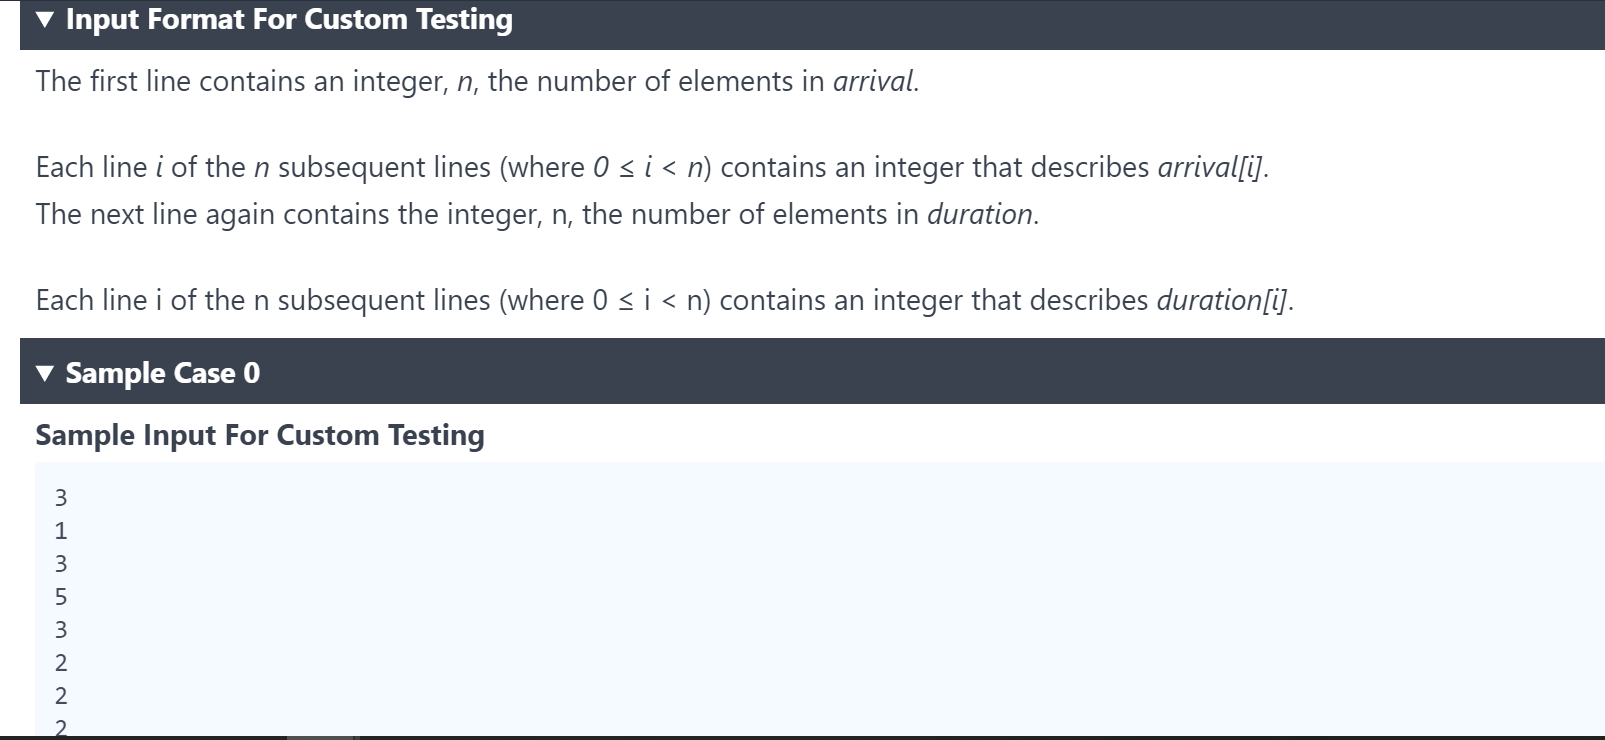 Input Format For Custom Testing The first line contains an integer, n, the number of elements in arrival. Each line i of the